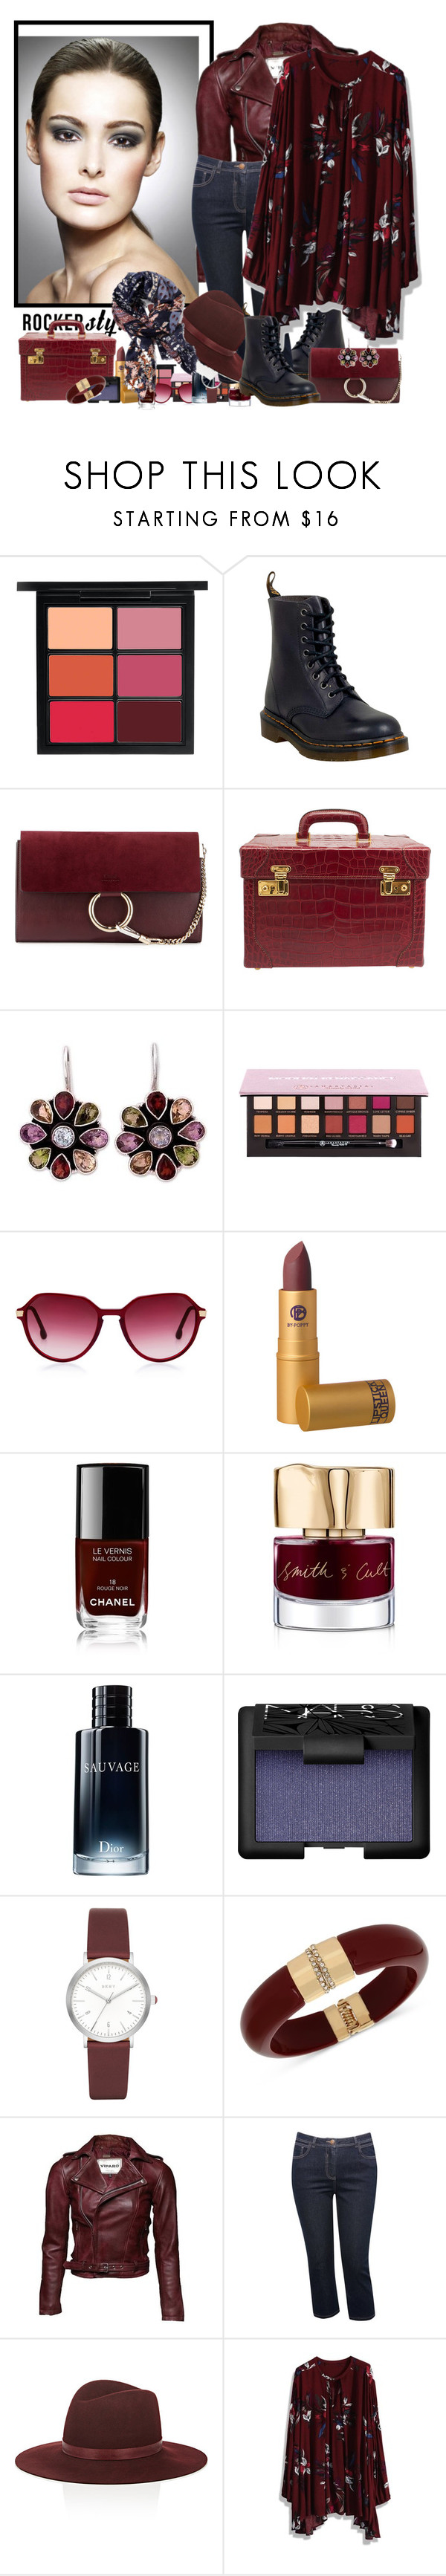 """rocker style..."" by zanet ❤ liked on Polyvore featuring MAC Cosmetics, Dr. Martens, Chloé, Gucci, NOVICA, Anastasia Beverly Hills, Chanel, Smith & Cult, Christian Dior and NARS Cosmetics"